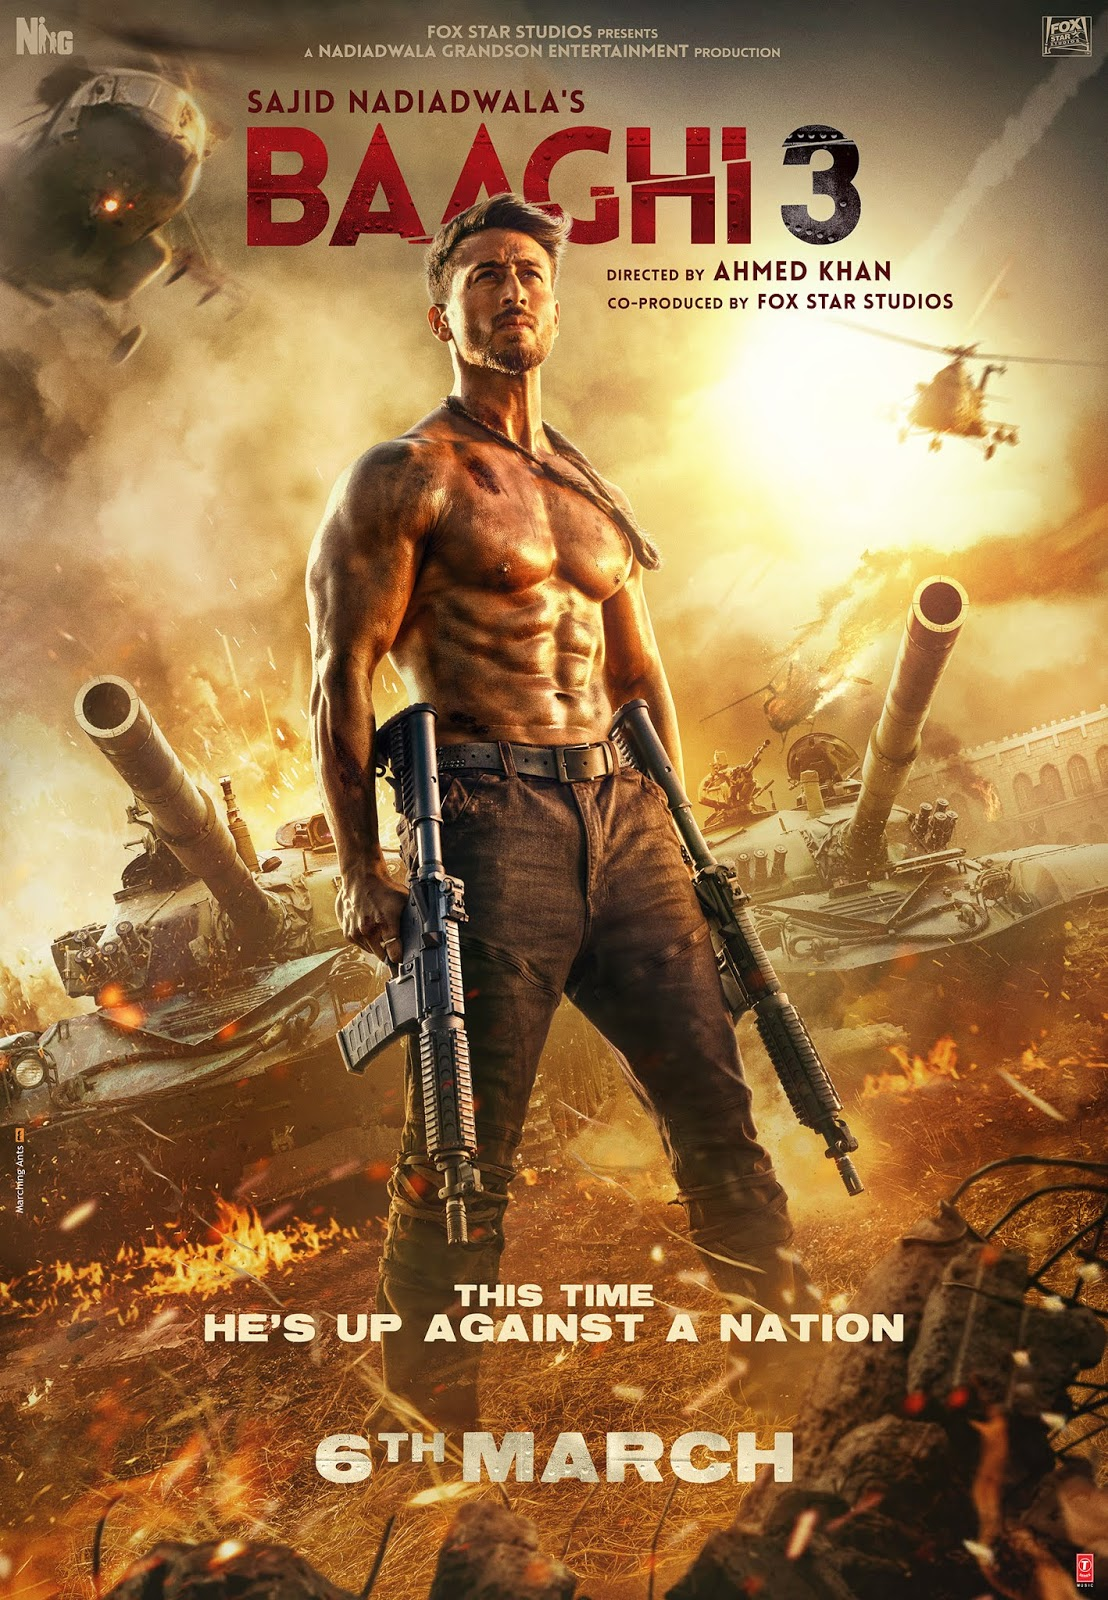 Baaghi 3 (2020) Movie Wiki Full Star Cast, Release Date, Sound Track & Official Trailer